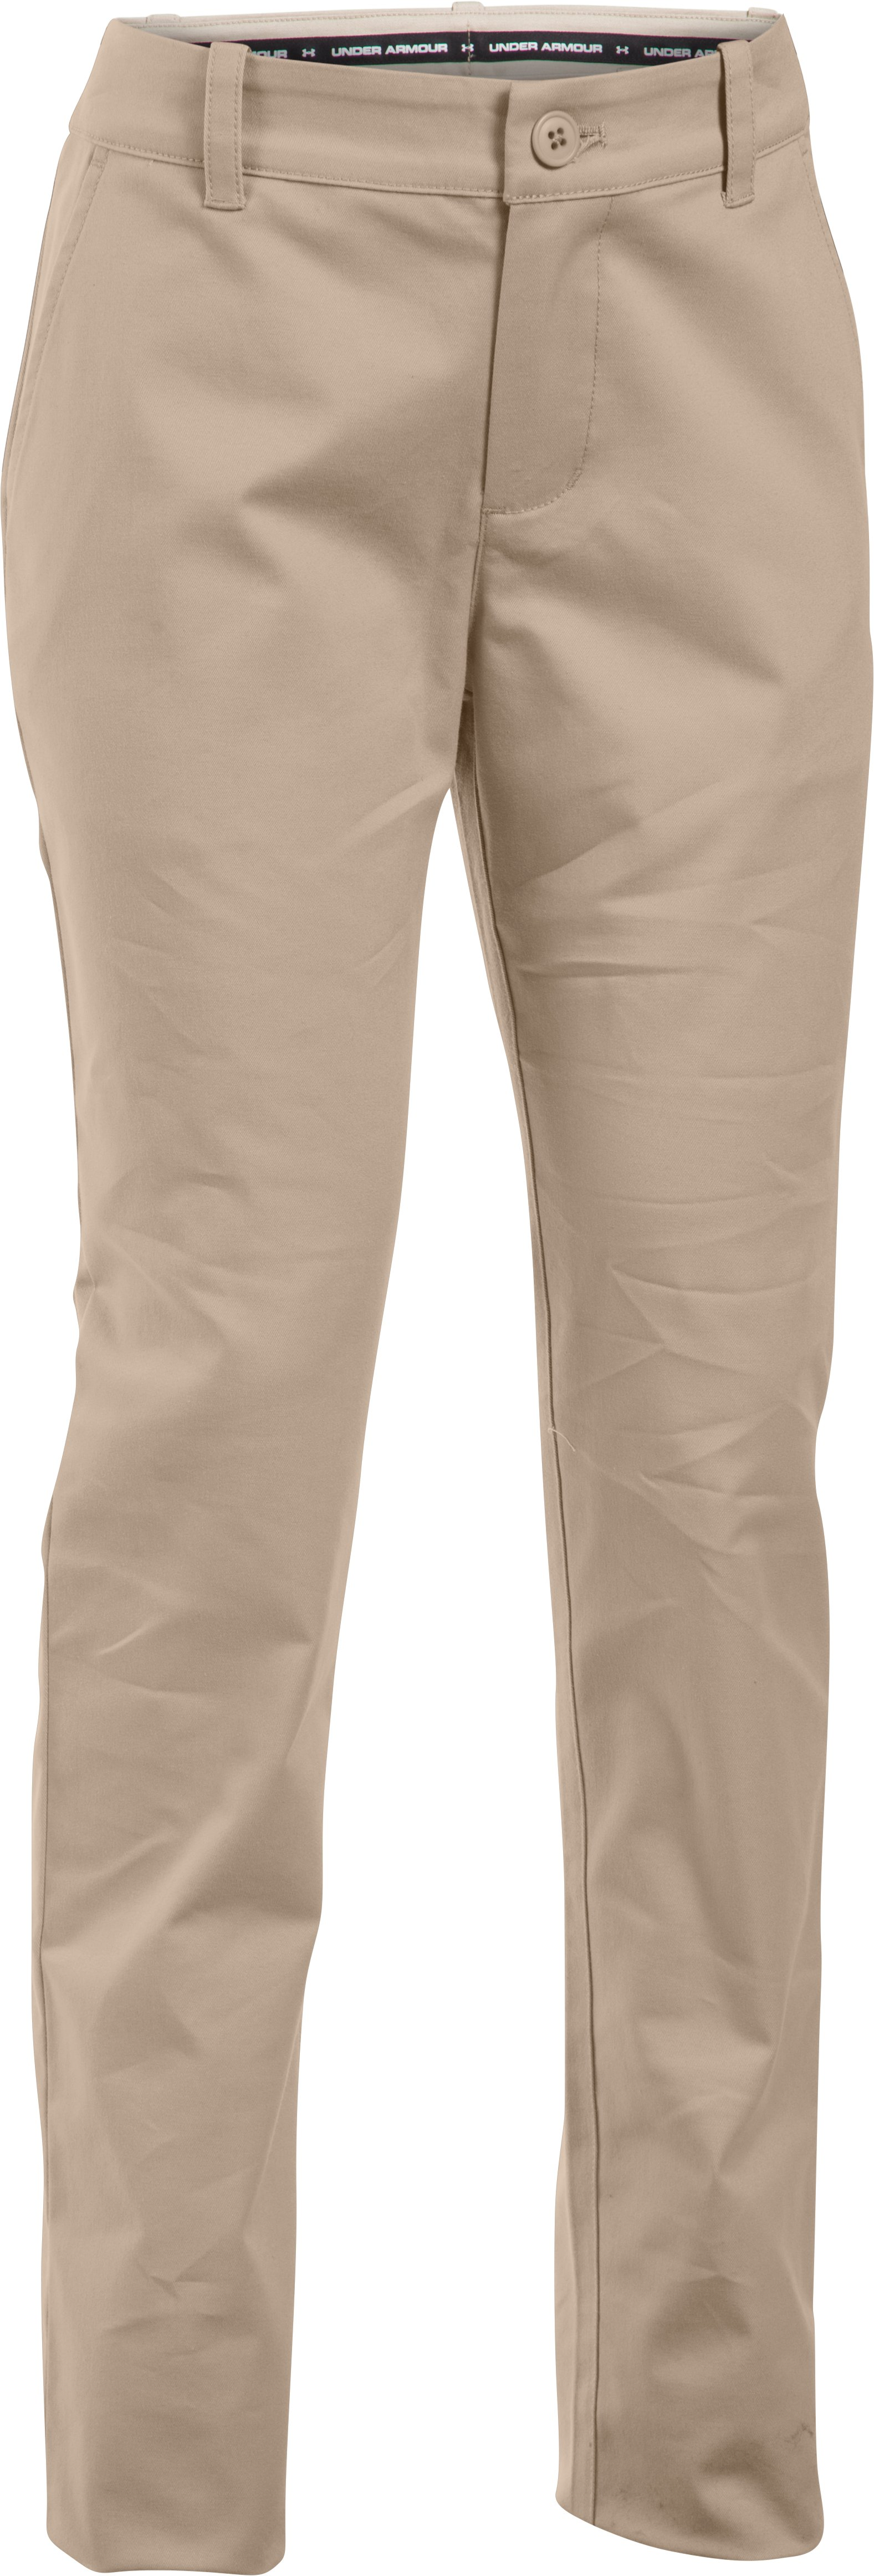 Girls' UA Uniform Chino Pants, Desert Sand